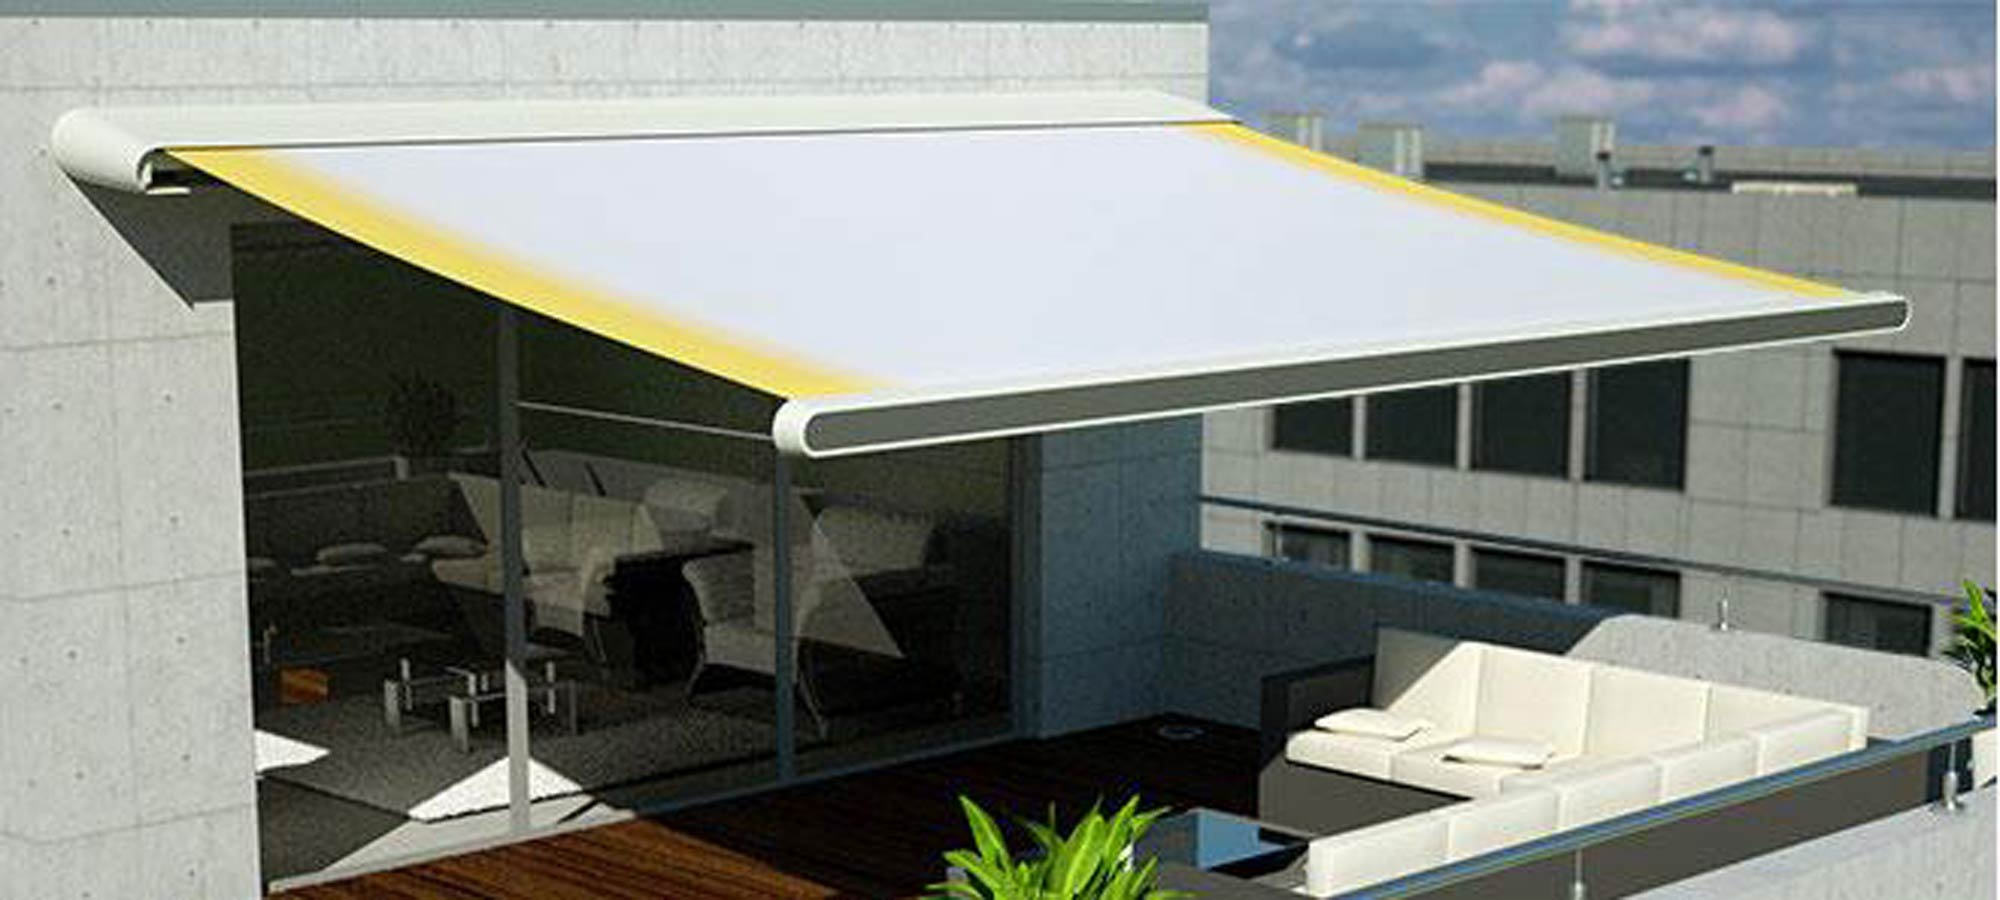 Tenda con cassonetto design